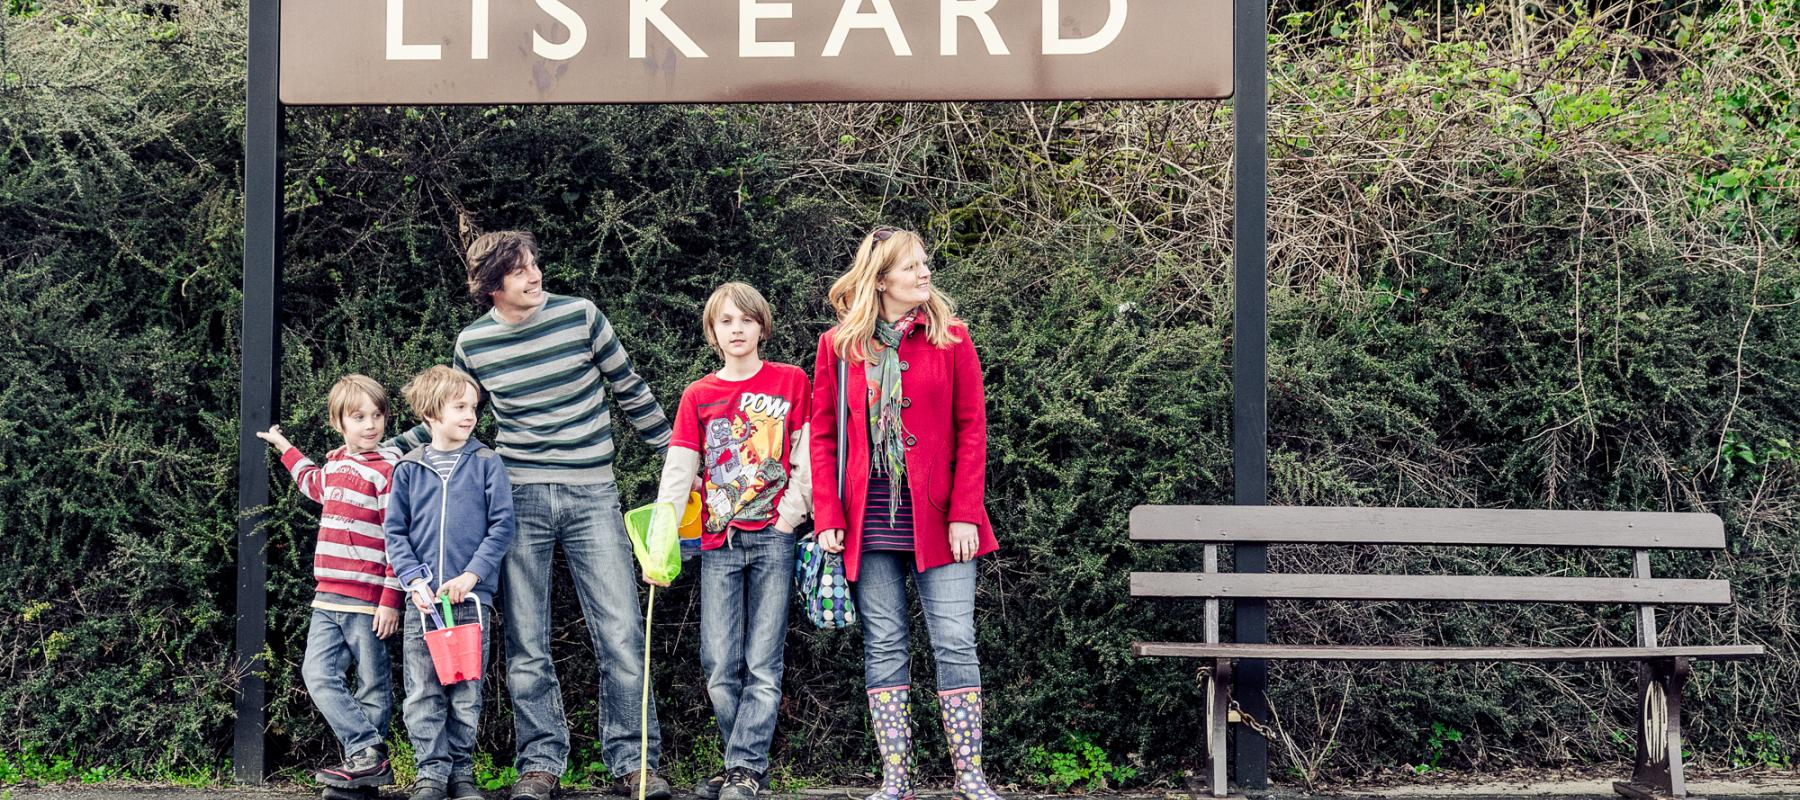 Family waiting for the train at Liskeard station